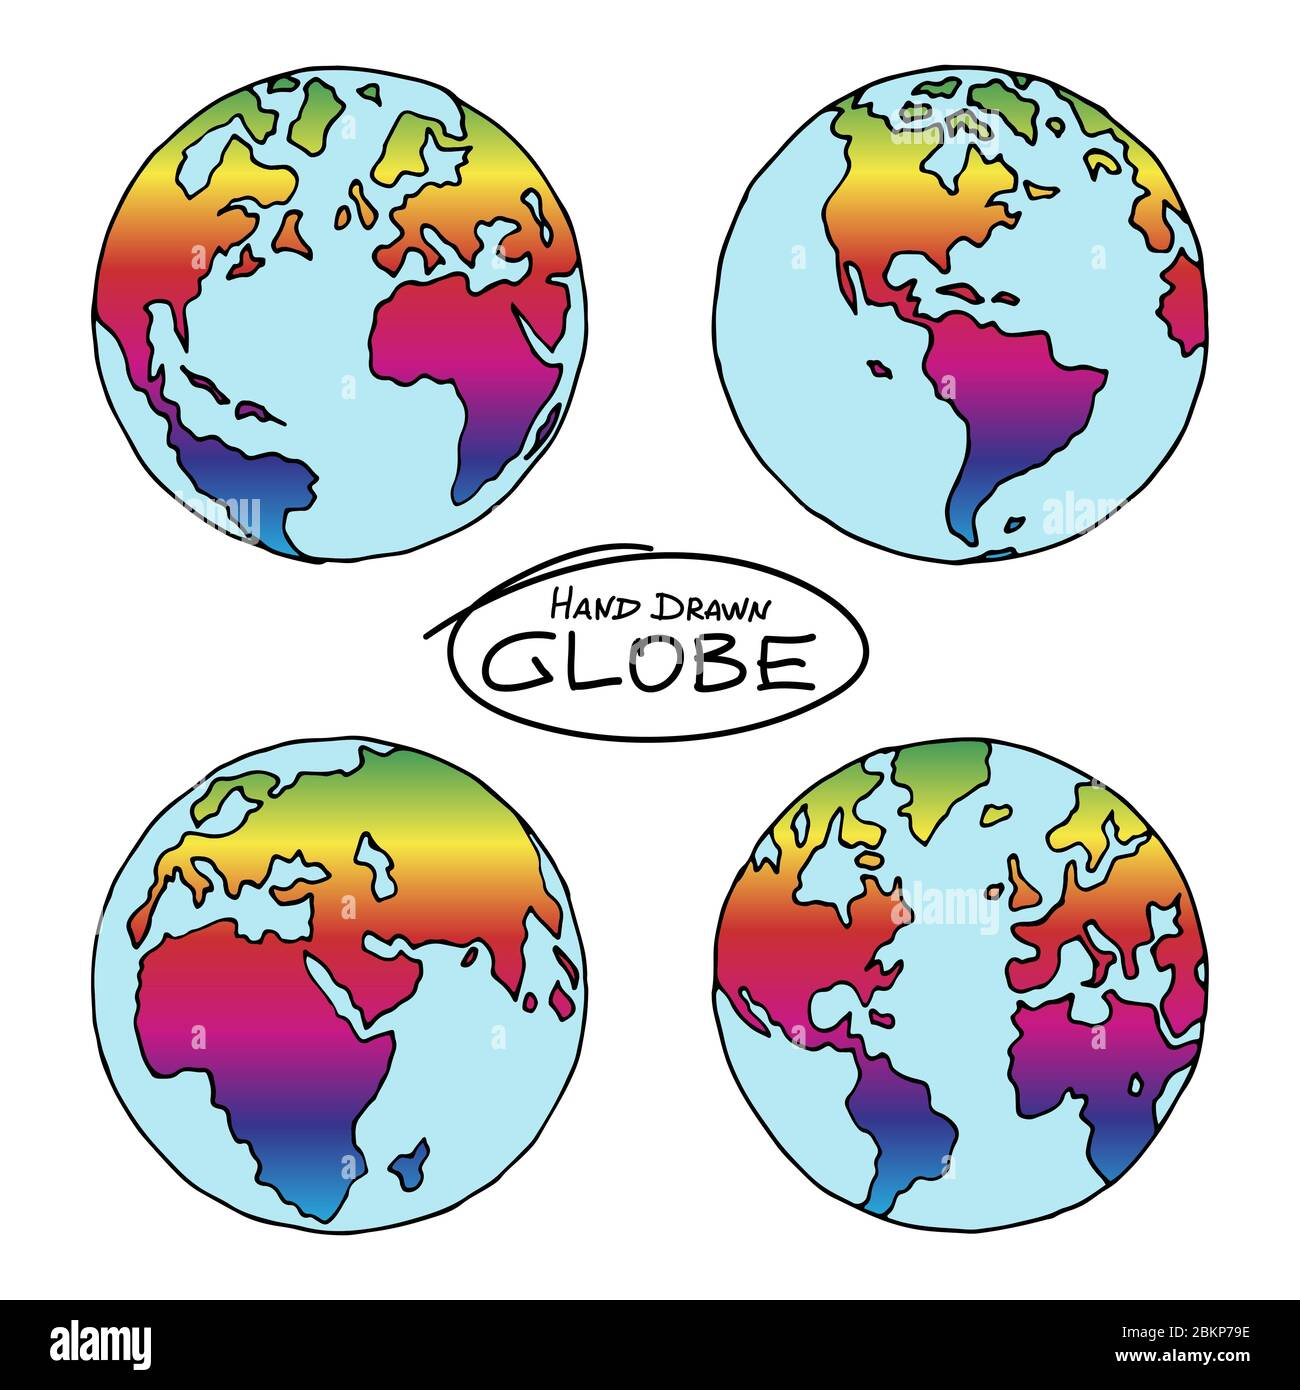 Hand drawn globe colored in rainbow gradient. Colorful symbol of freedom, equality and peace. Not exactly precision outline drawing of world map. Easy Stock Vector